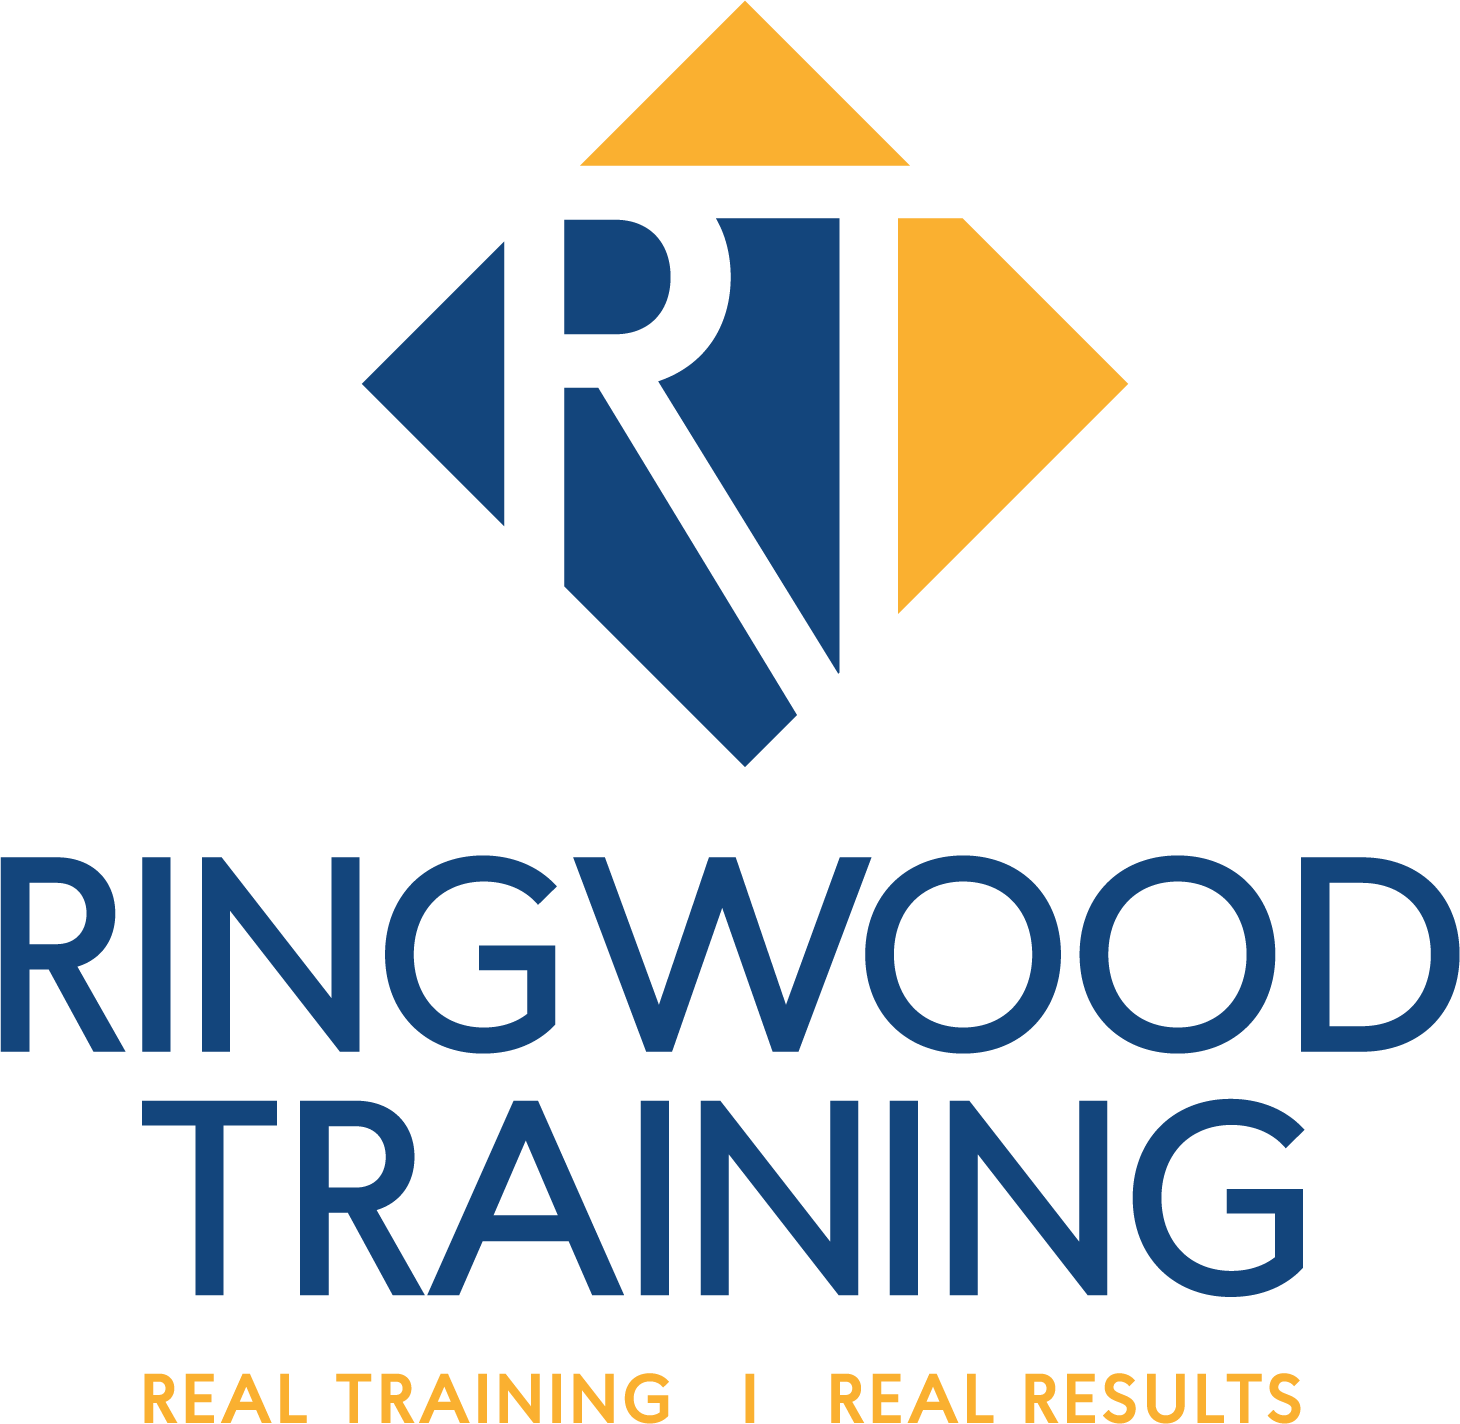 Engineering Fabrication & Welding - Ringwood Training - RT